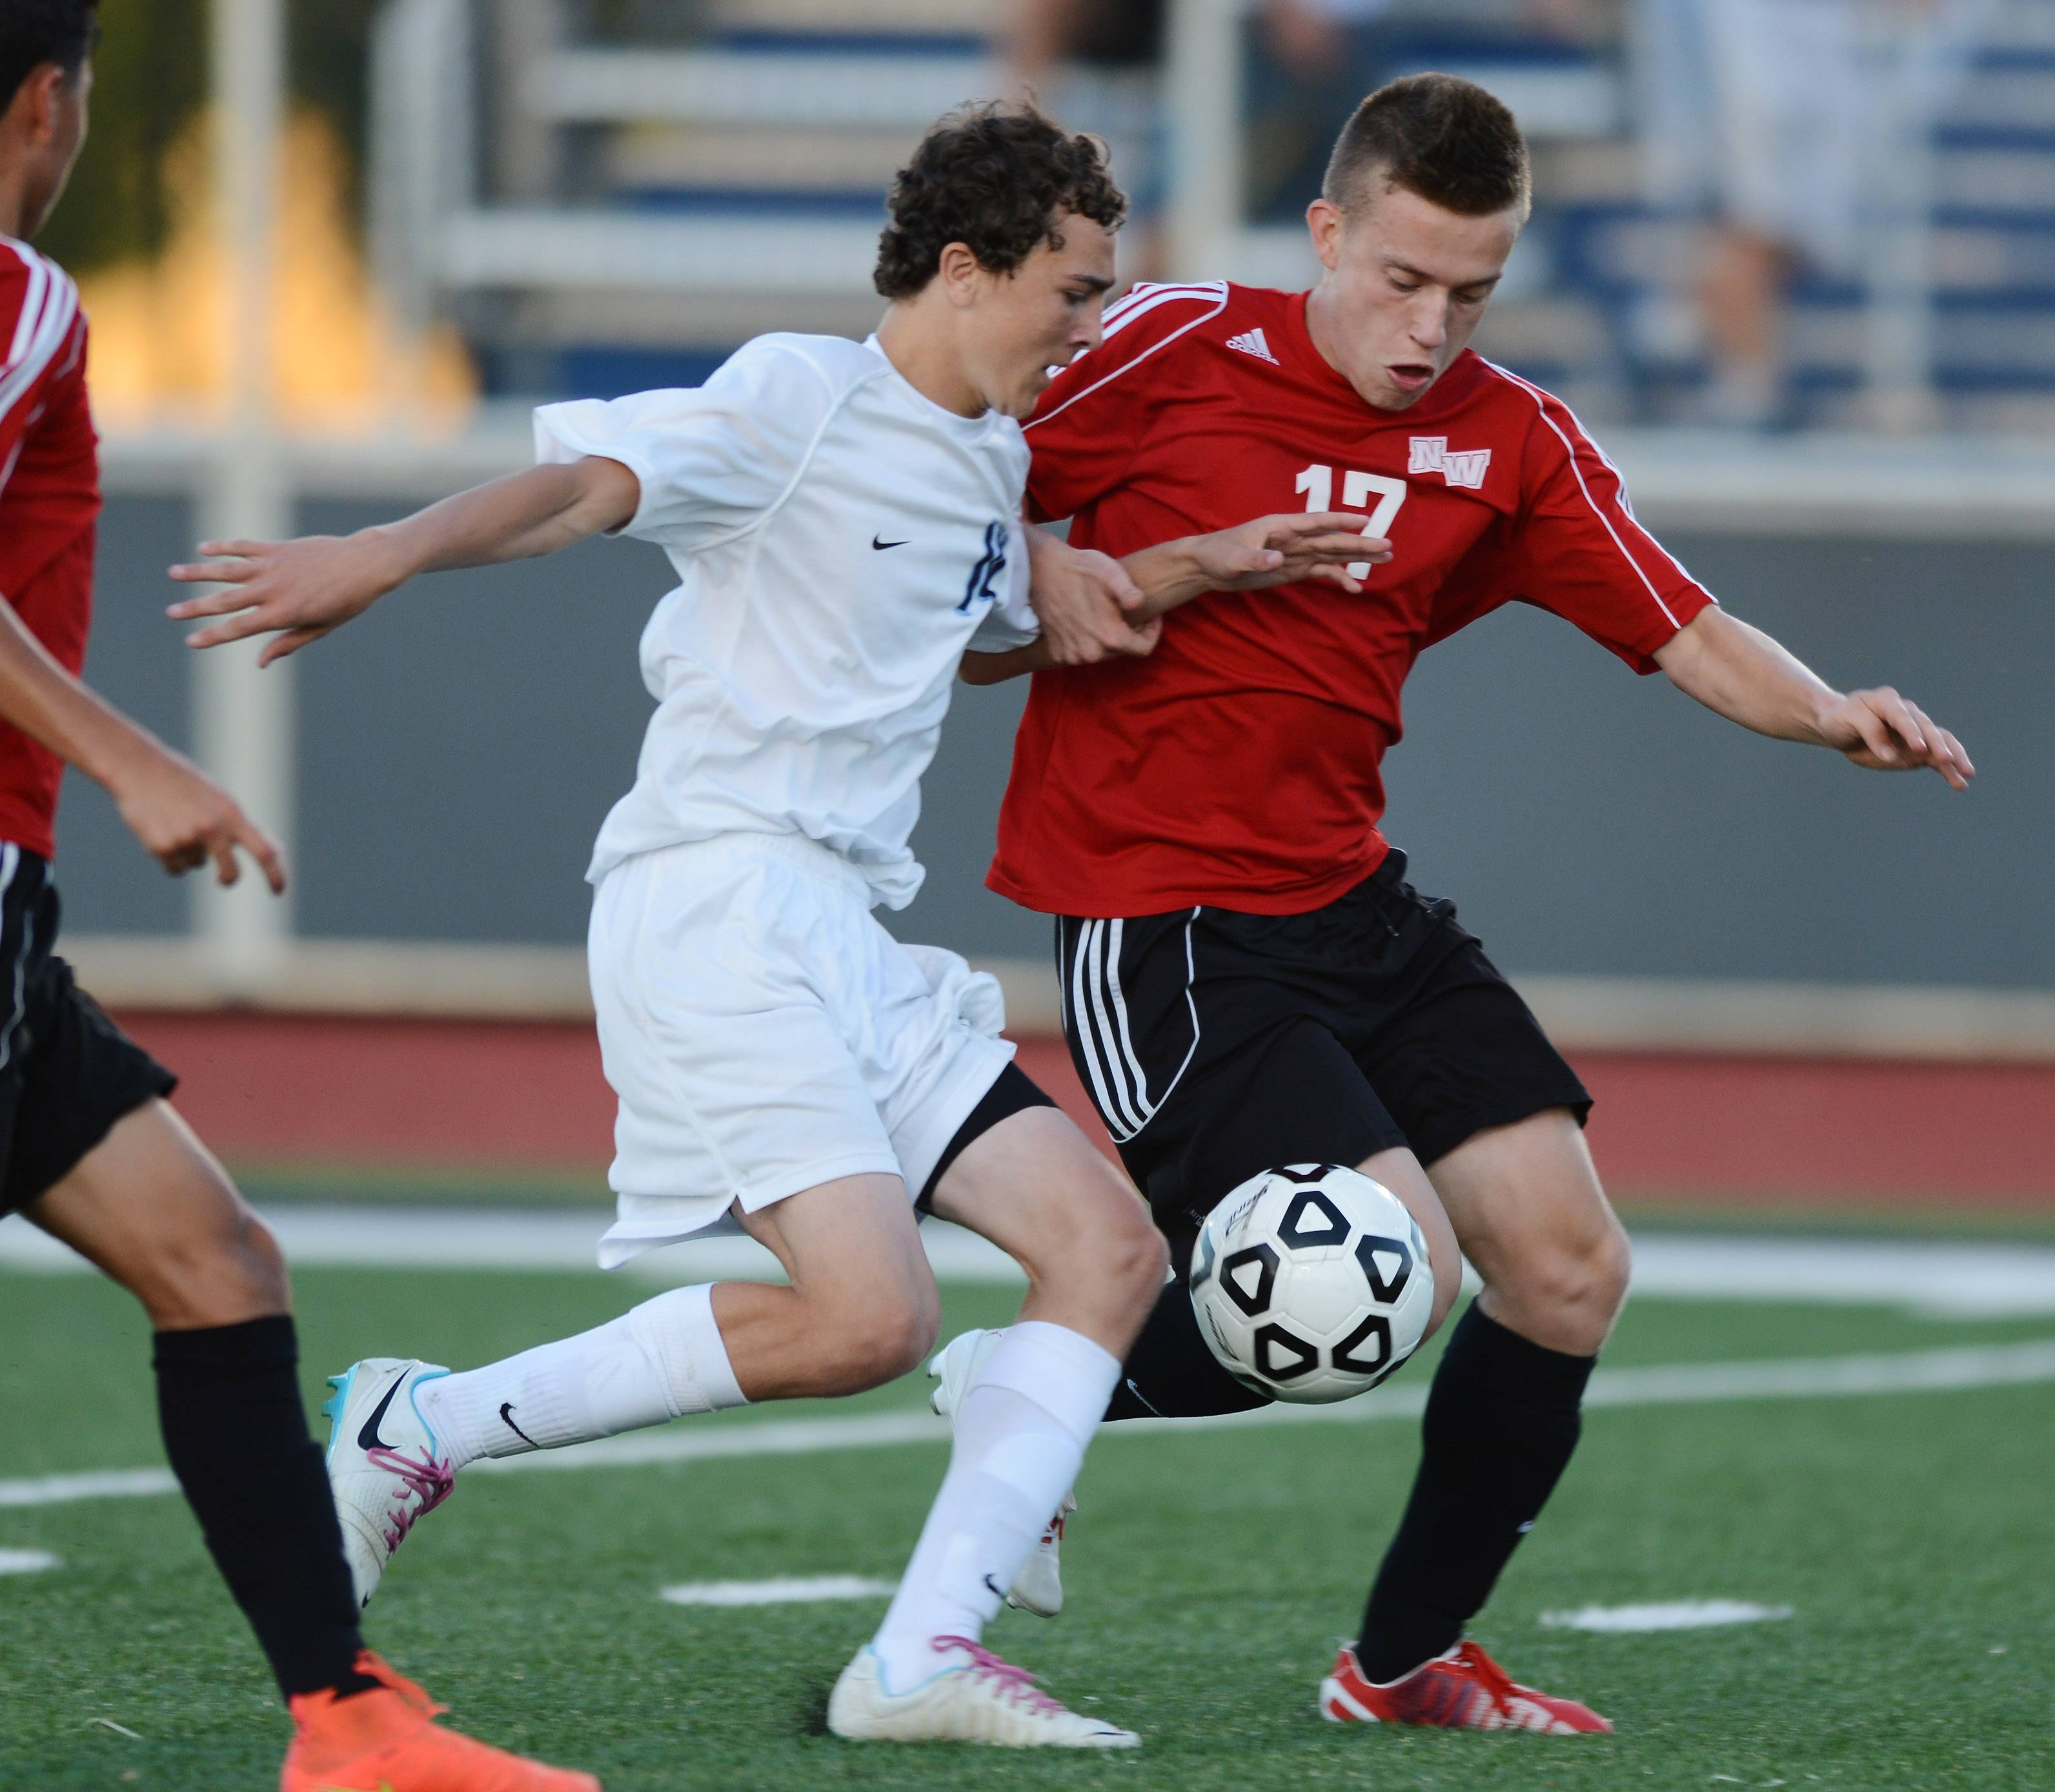 Chris Cooney, left, of Prospect and Emin Ademi of Niles West make contact as they pursue the ball during Tuesday's game in Mount Prospect.